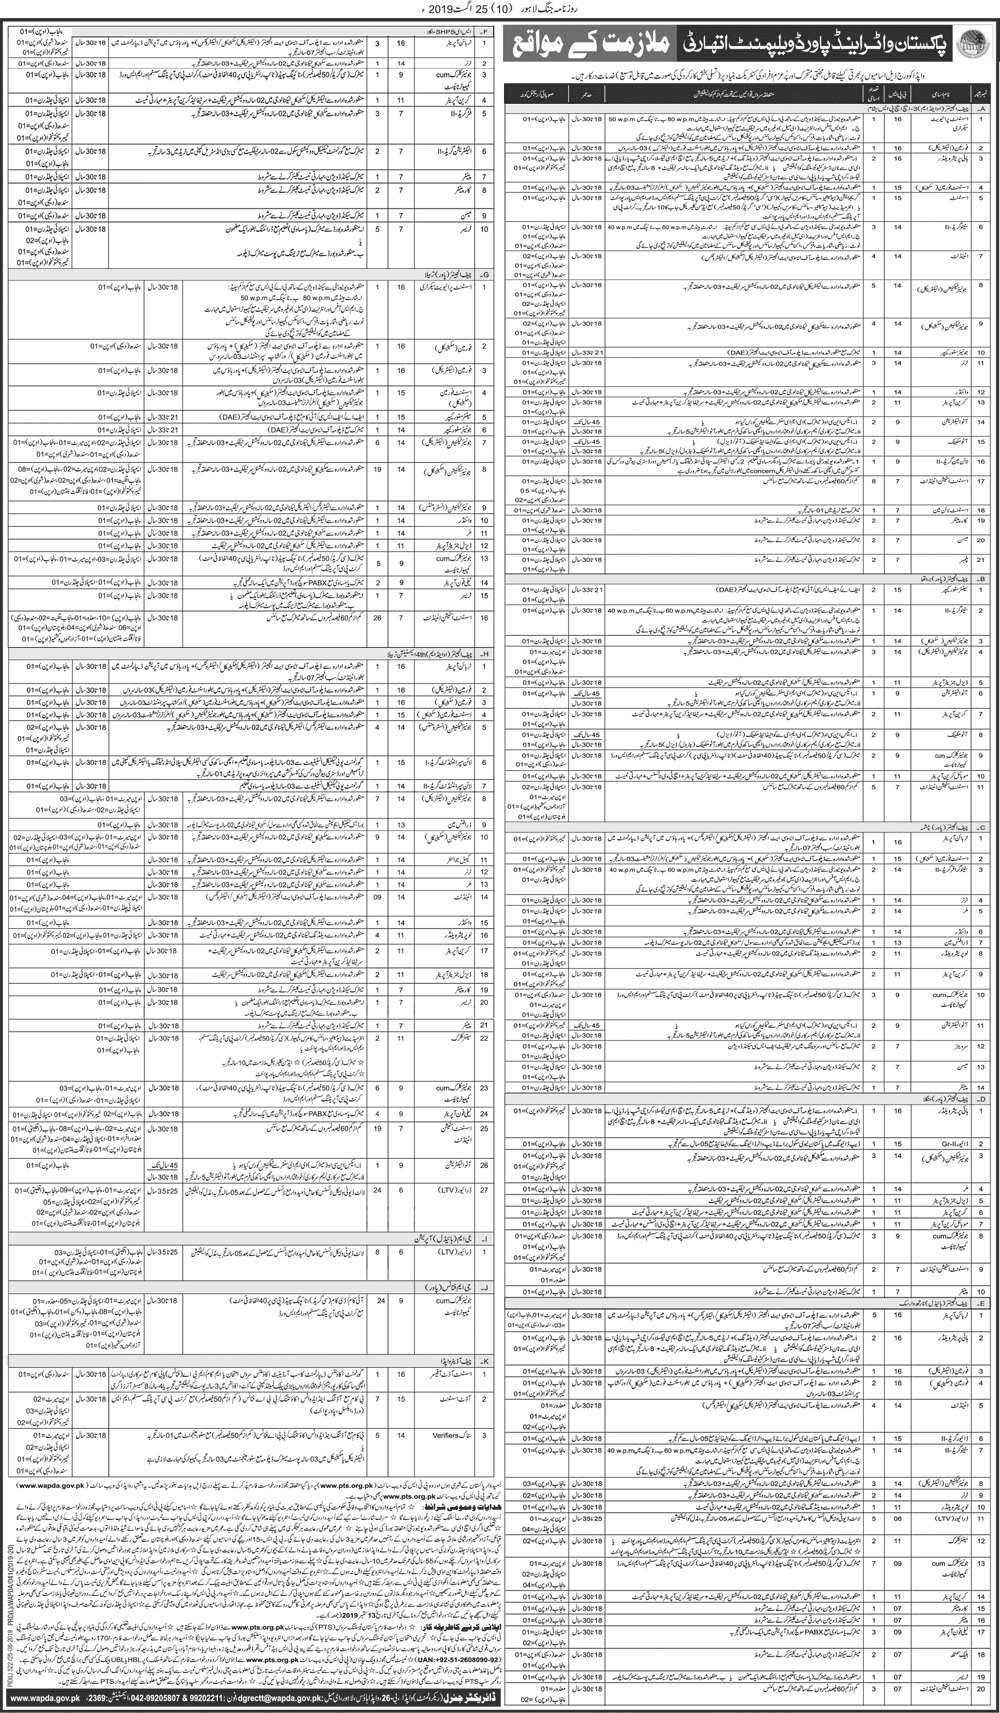 Water Power Development Authority Wapda Jobs Via PTS